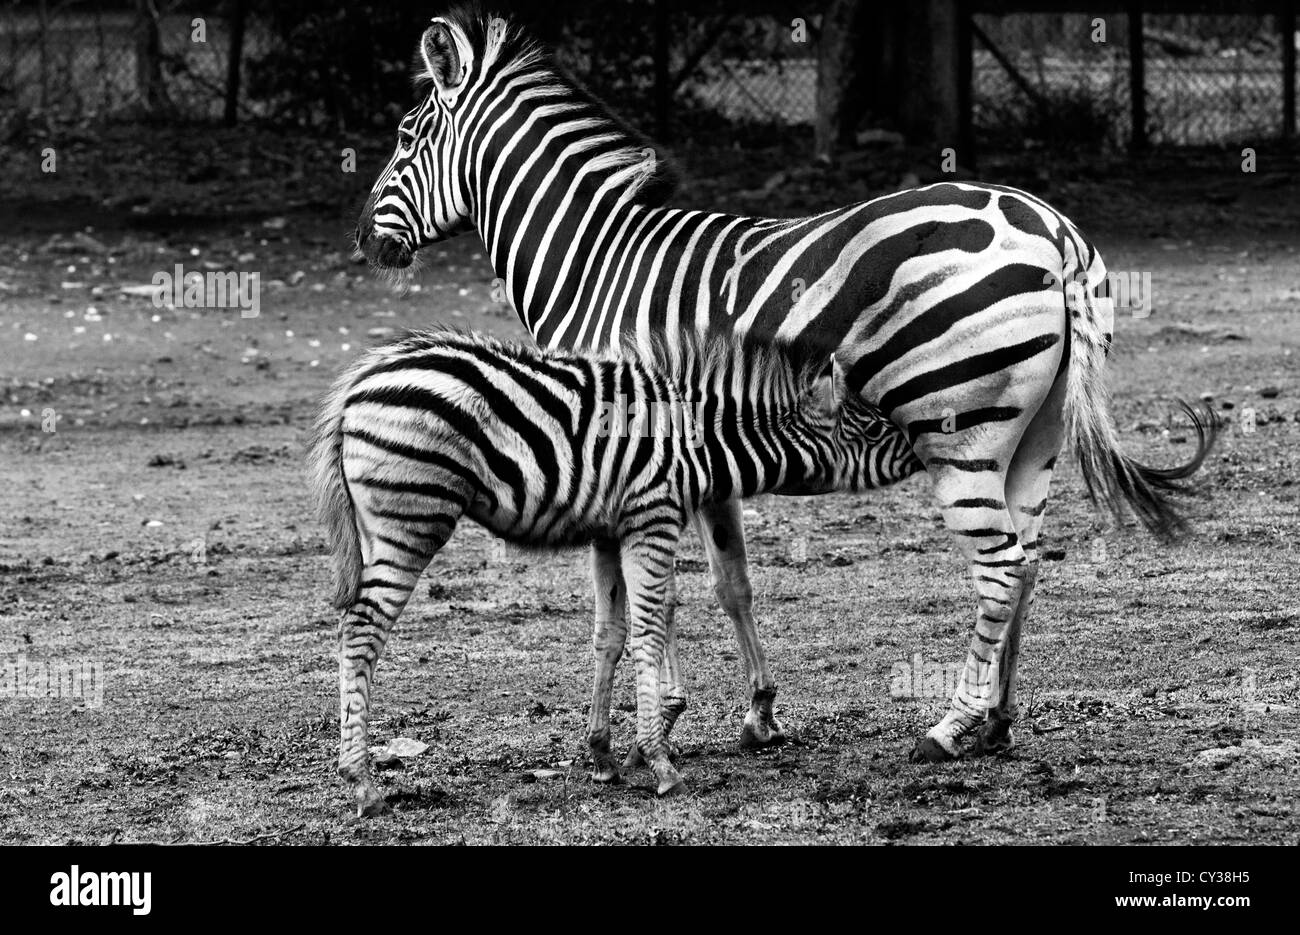 Zebra snack time - Stock Image